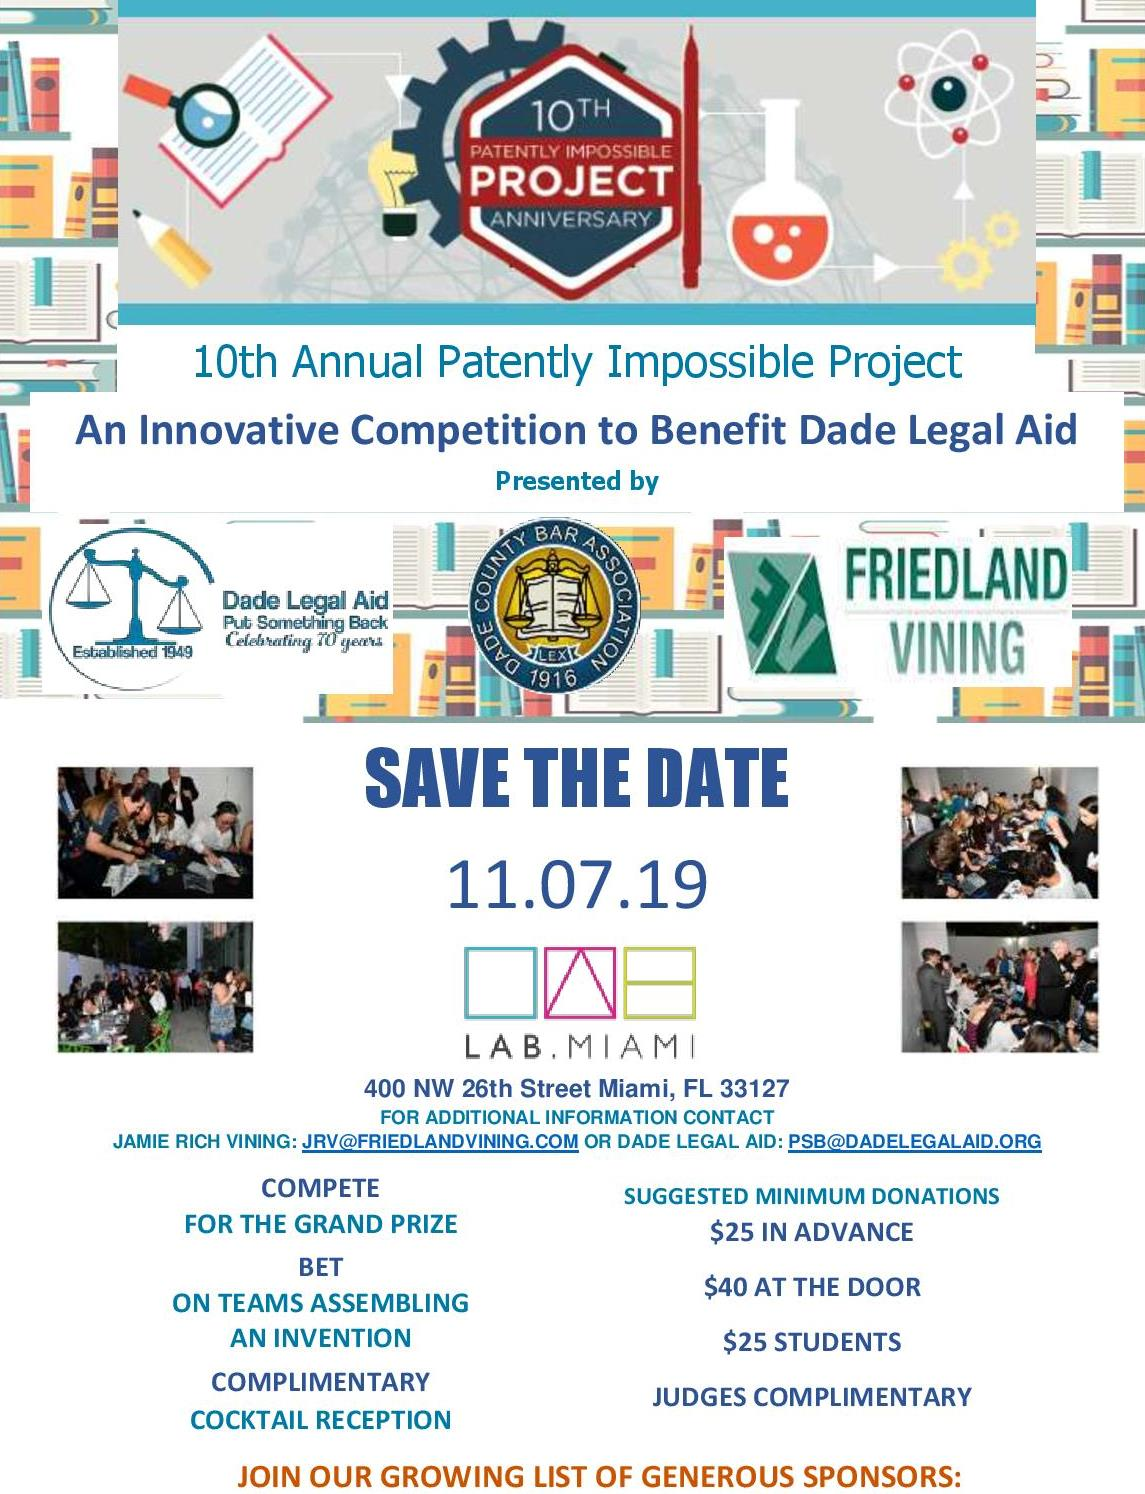 10th Annual Patently Impossible Project: An Innovative Competition to Benefit Dade Legal Aid: Save the Date!